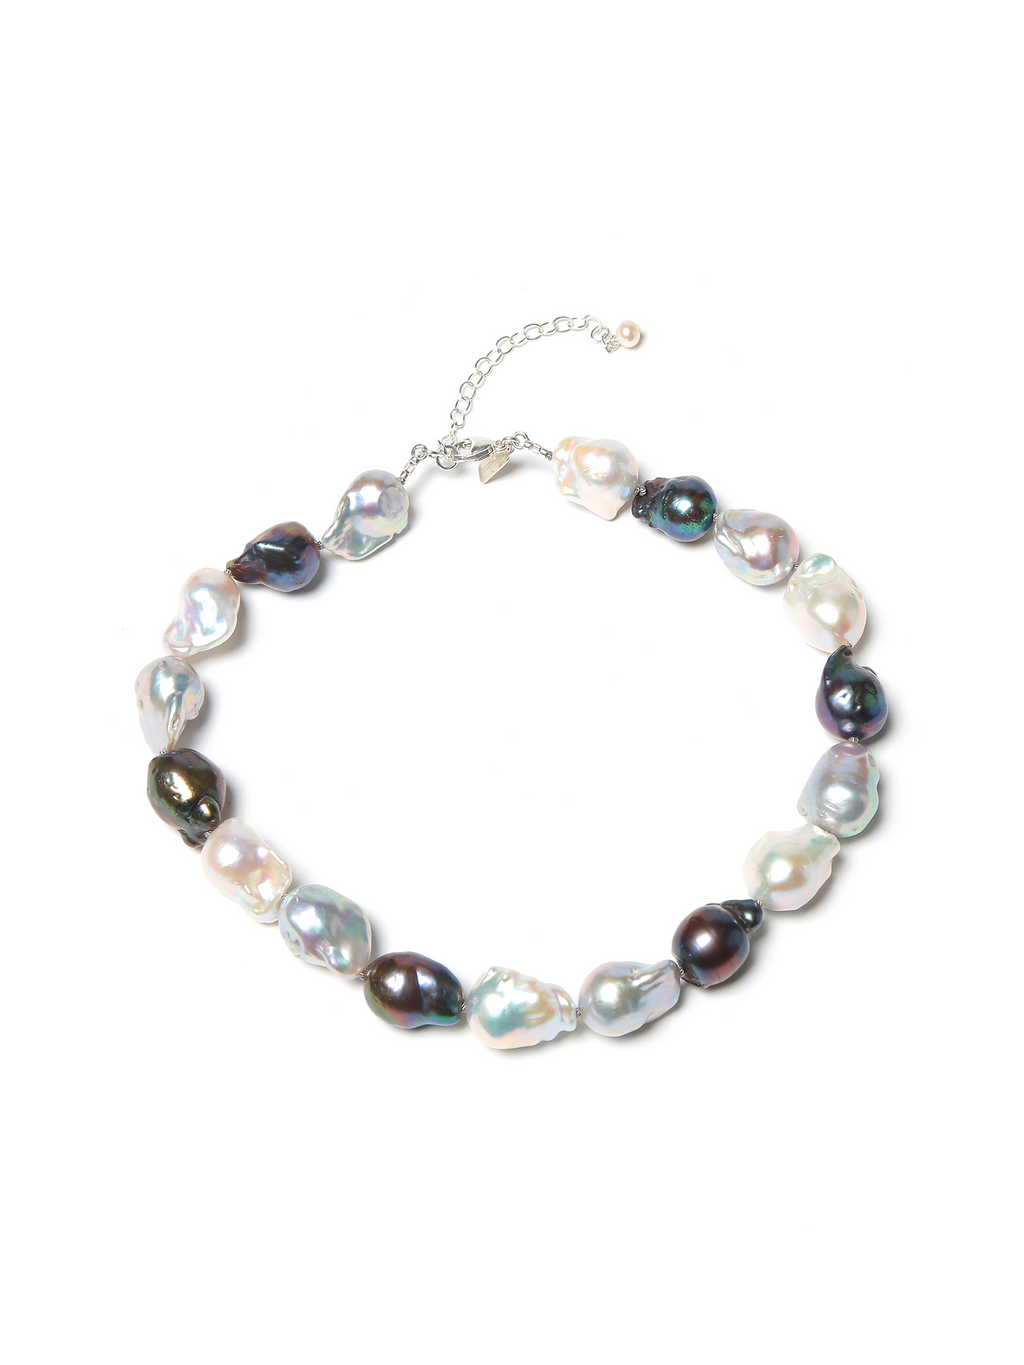 Margo Morrison Grey and White Baroque Pearl Necklace